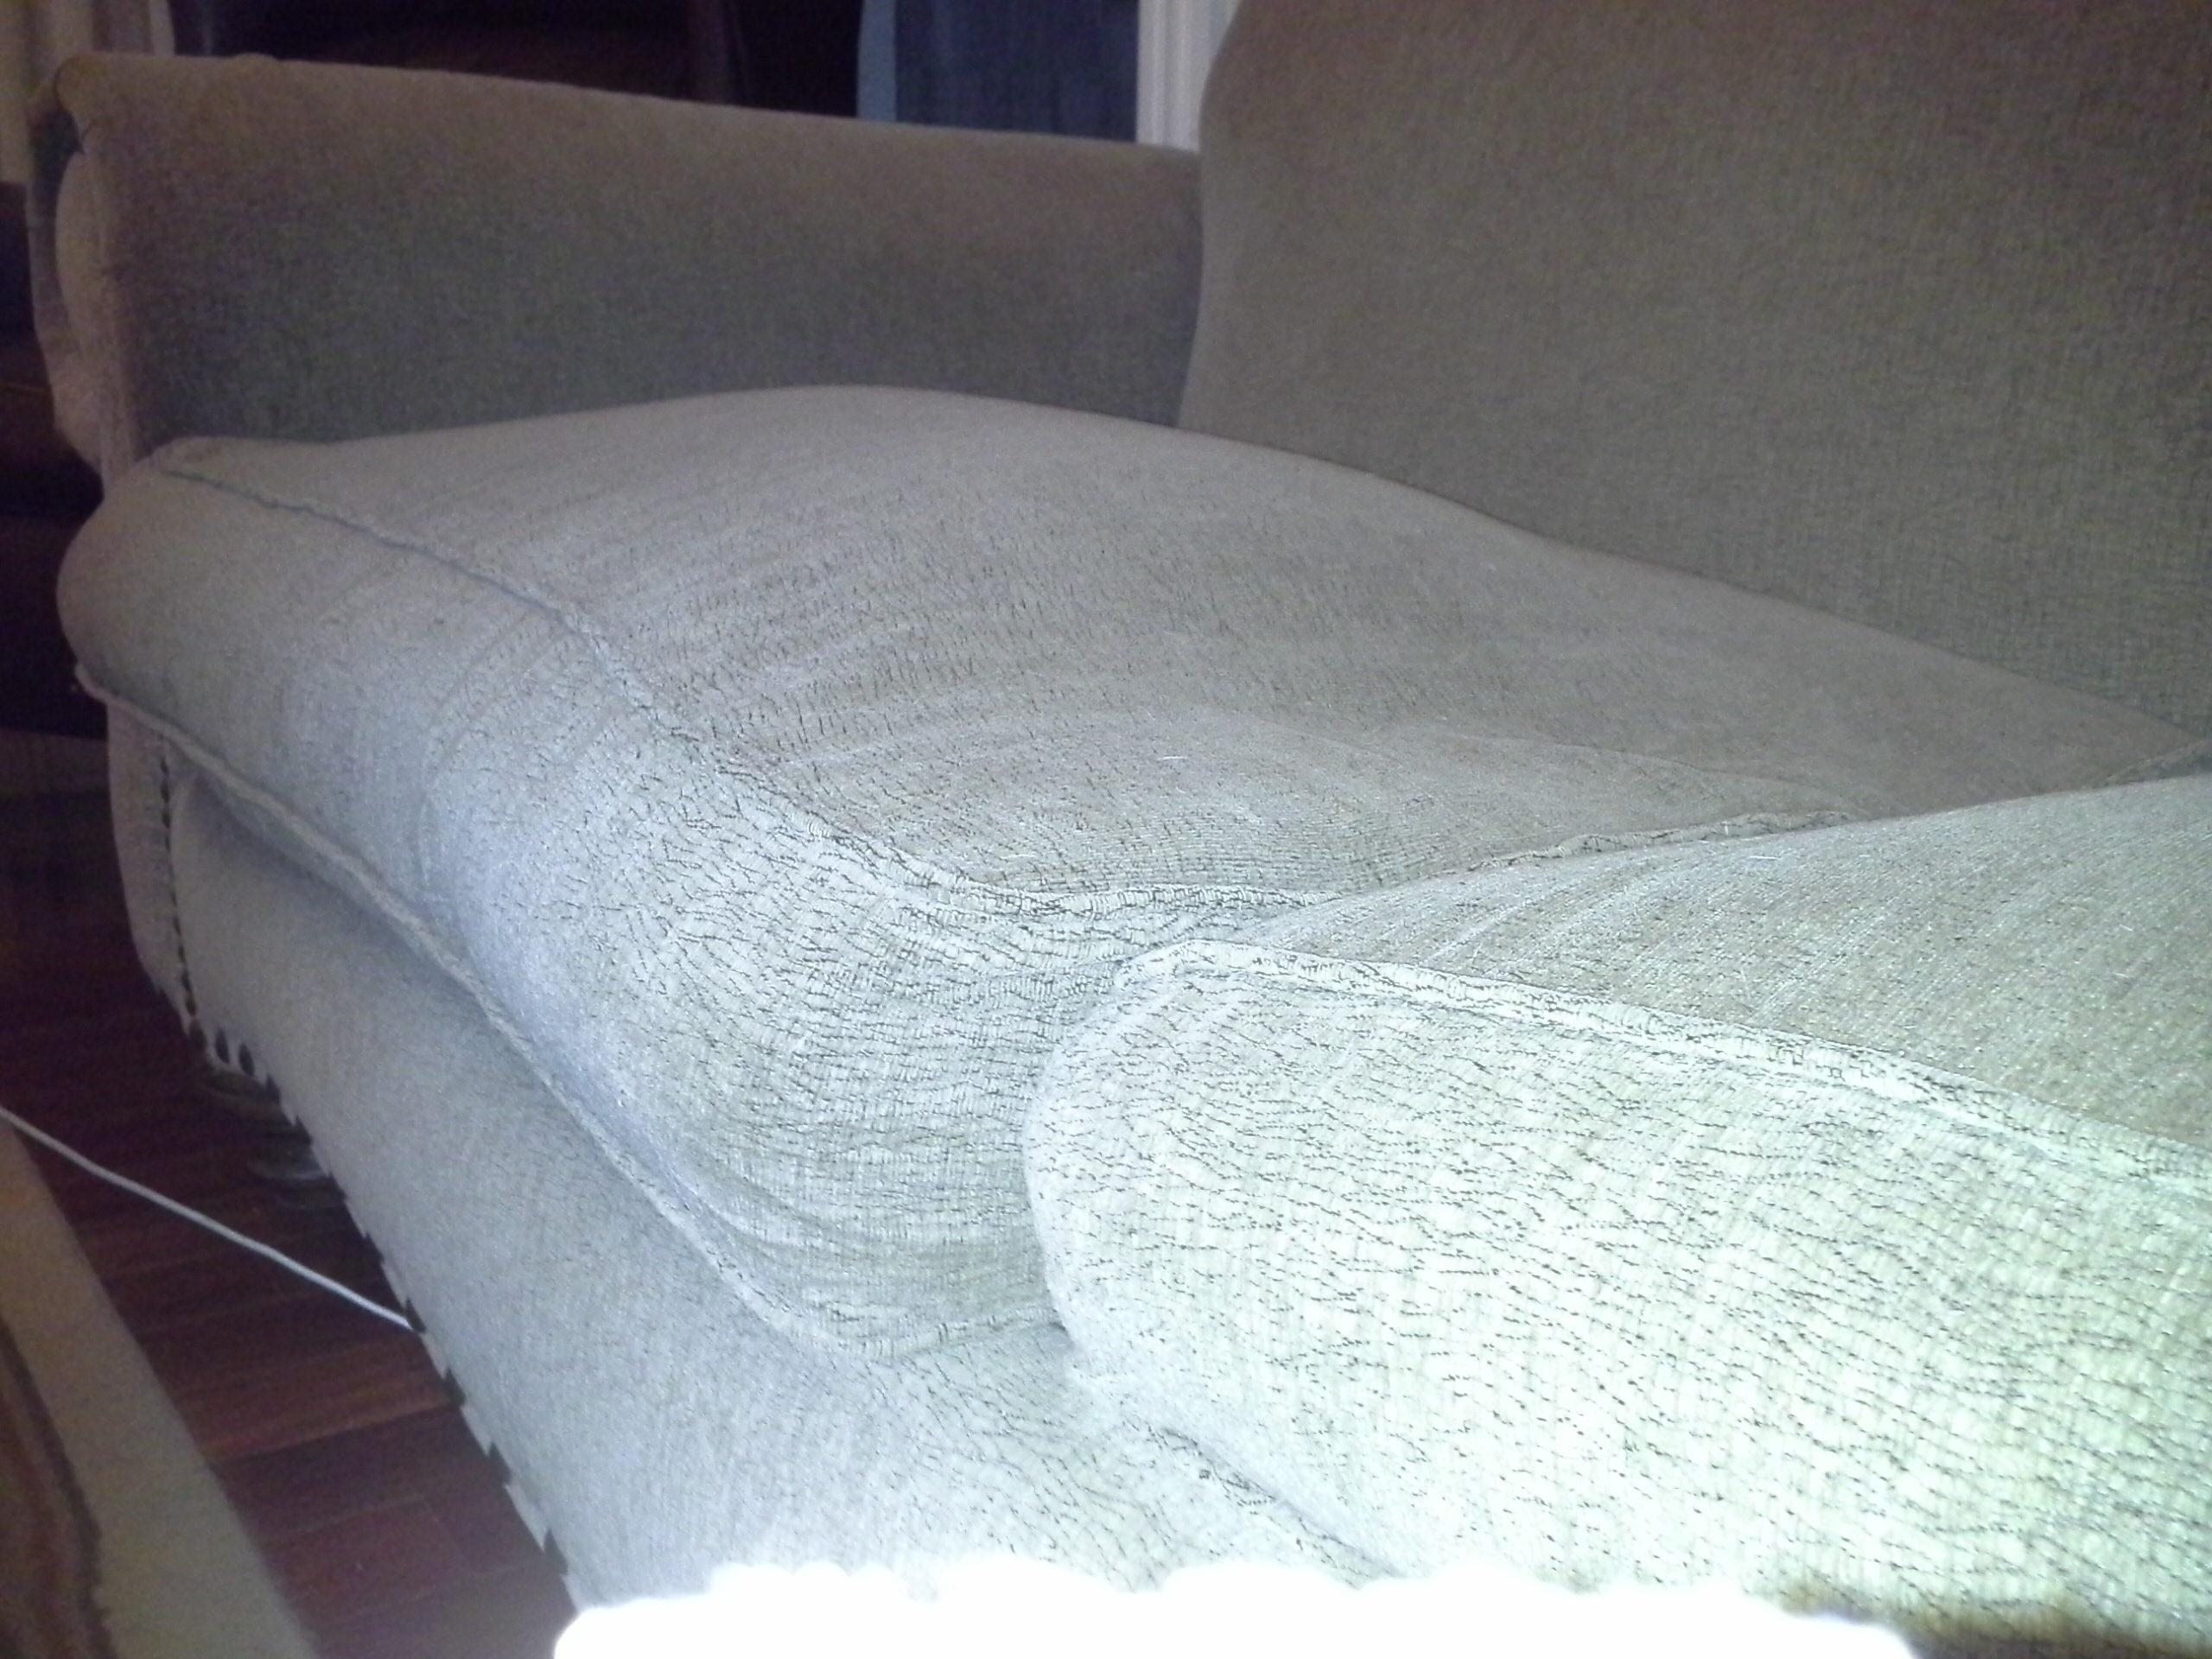 Top 129 Reviews And Complaints About Broyhill Pertaining To Broyhill Larissa Sofas (Image 19 of 20)